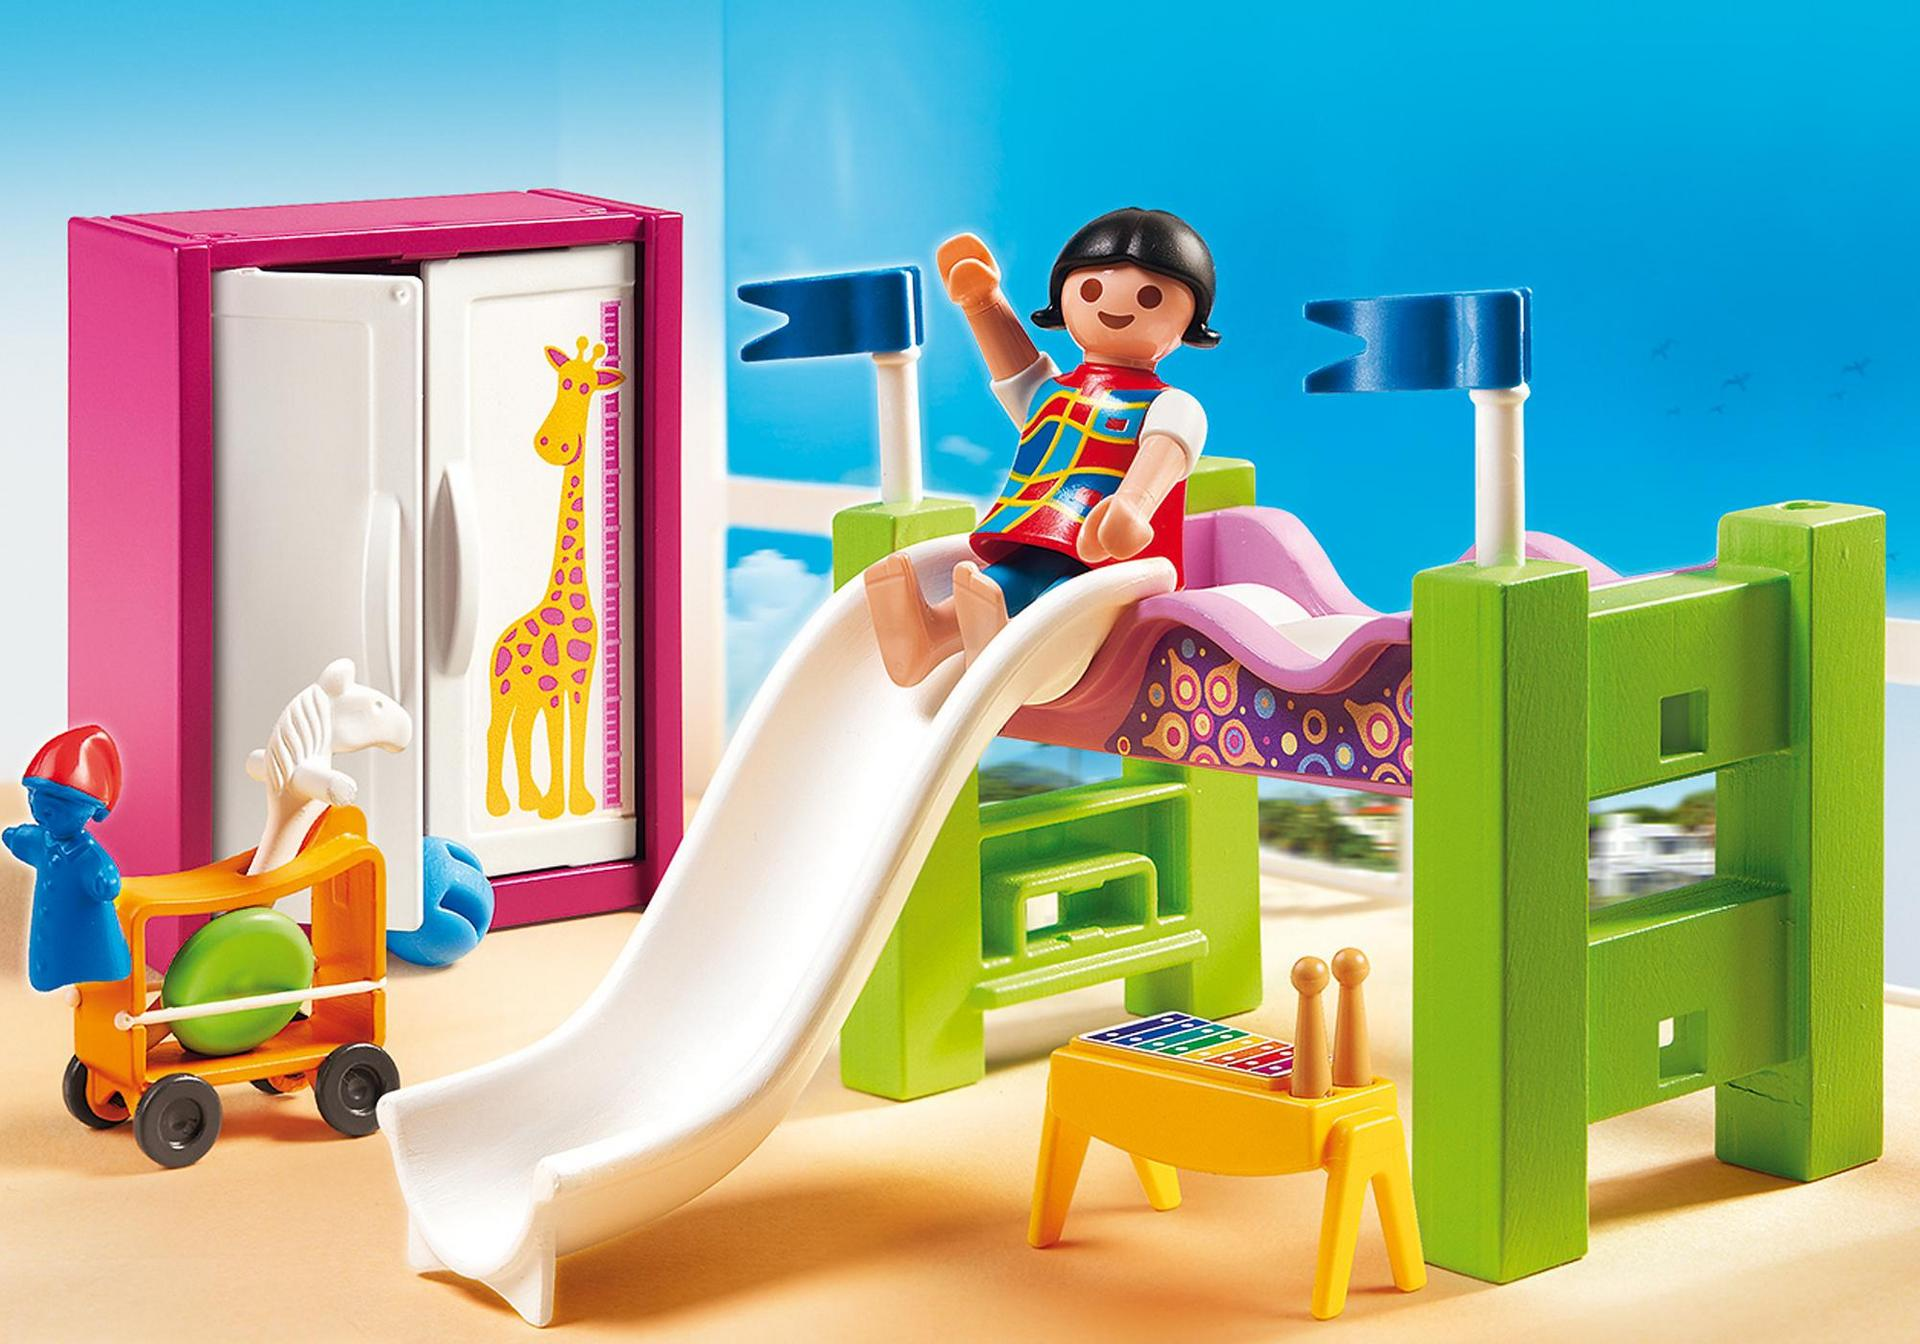 chambre d enfant avec lit mezzanine 5579 playmobil france. Black Bedroom Furniture Sets. Home Design Ideas